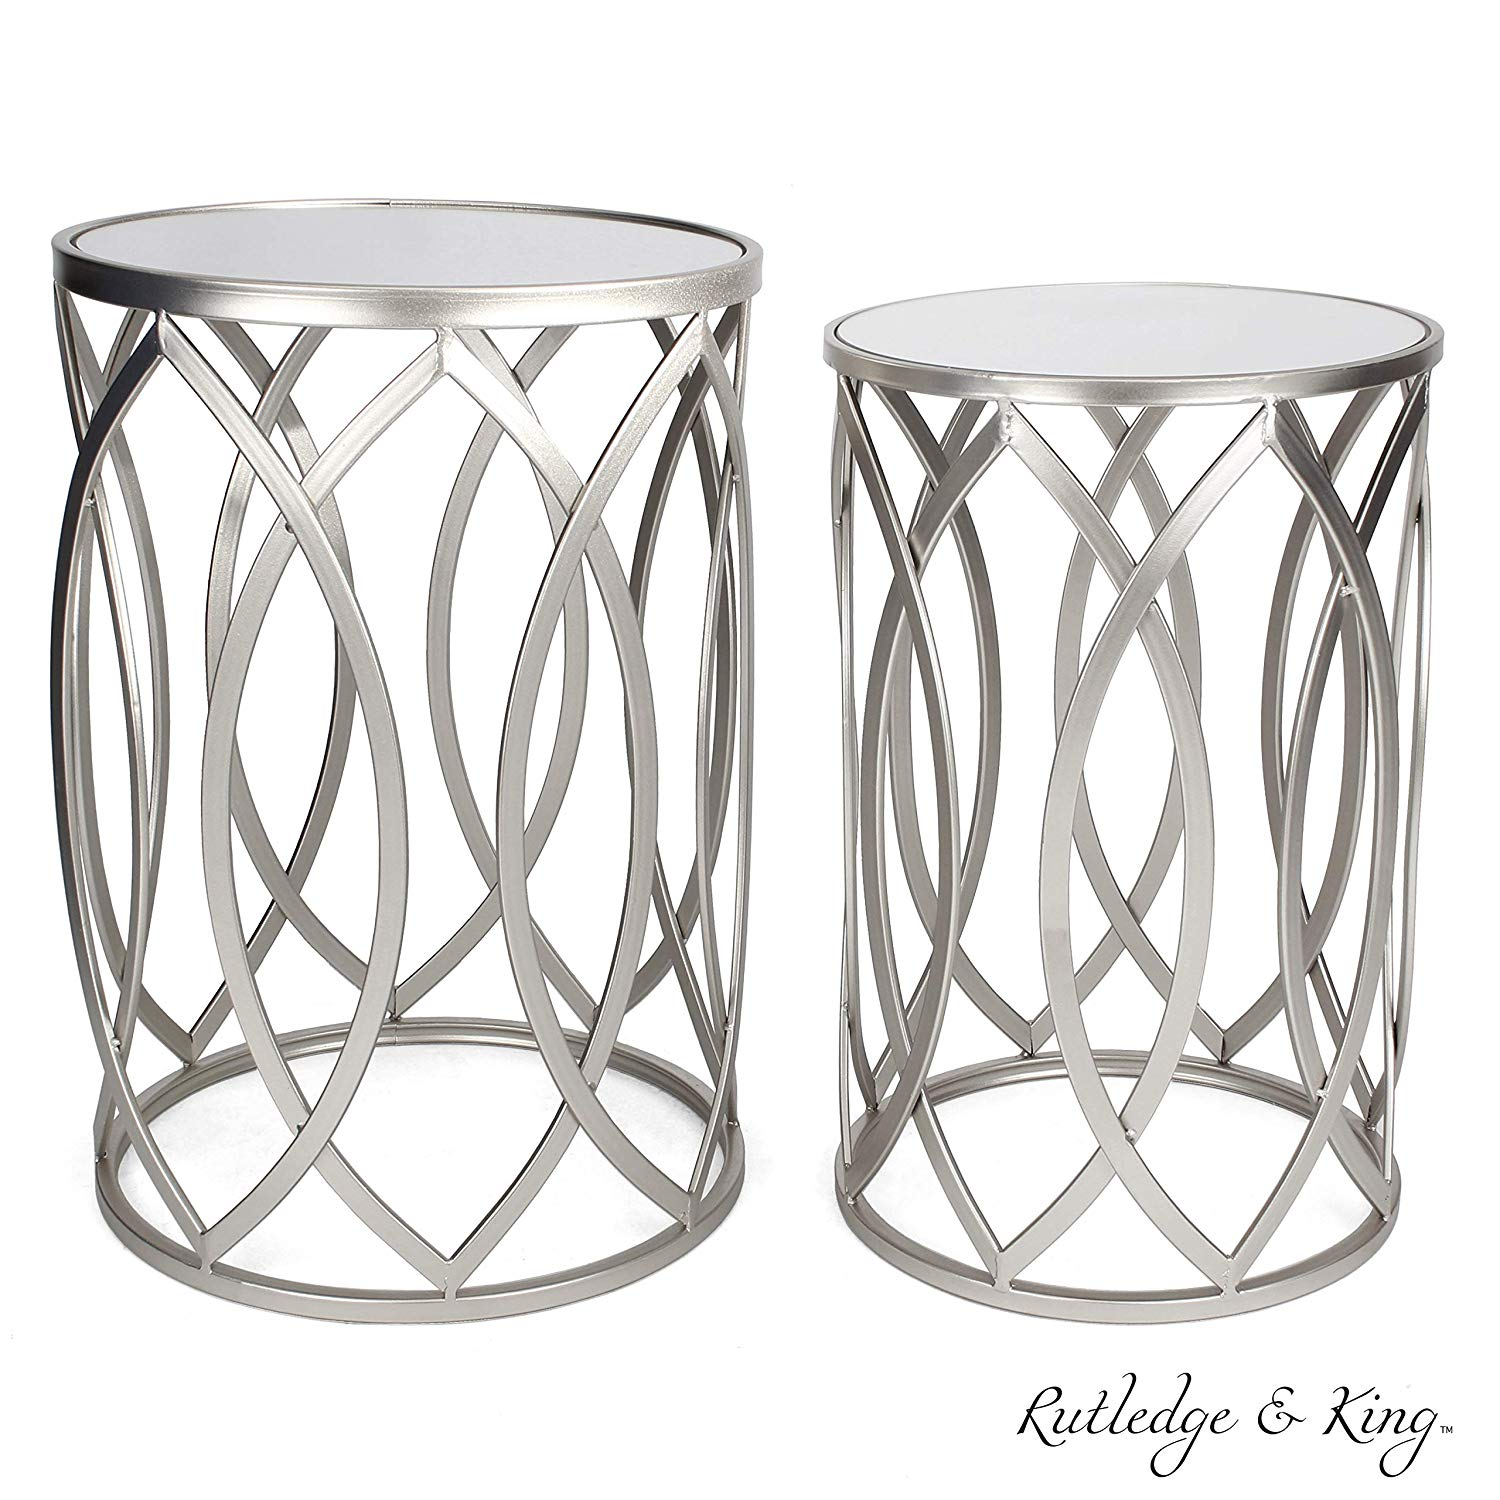 round end table set silver tables with mirrored metal eyelet accent tops nesting and side rutledge king blufton ashley furniture leather couch trestle dining room hammary cupcake